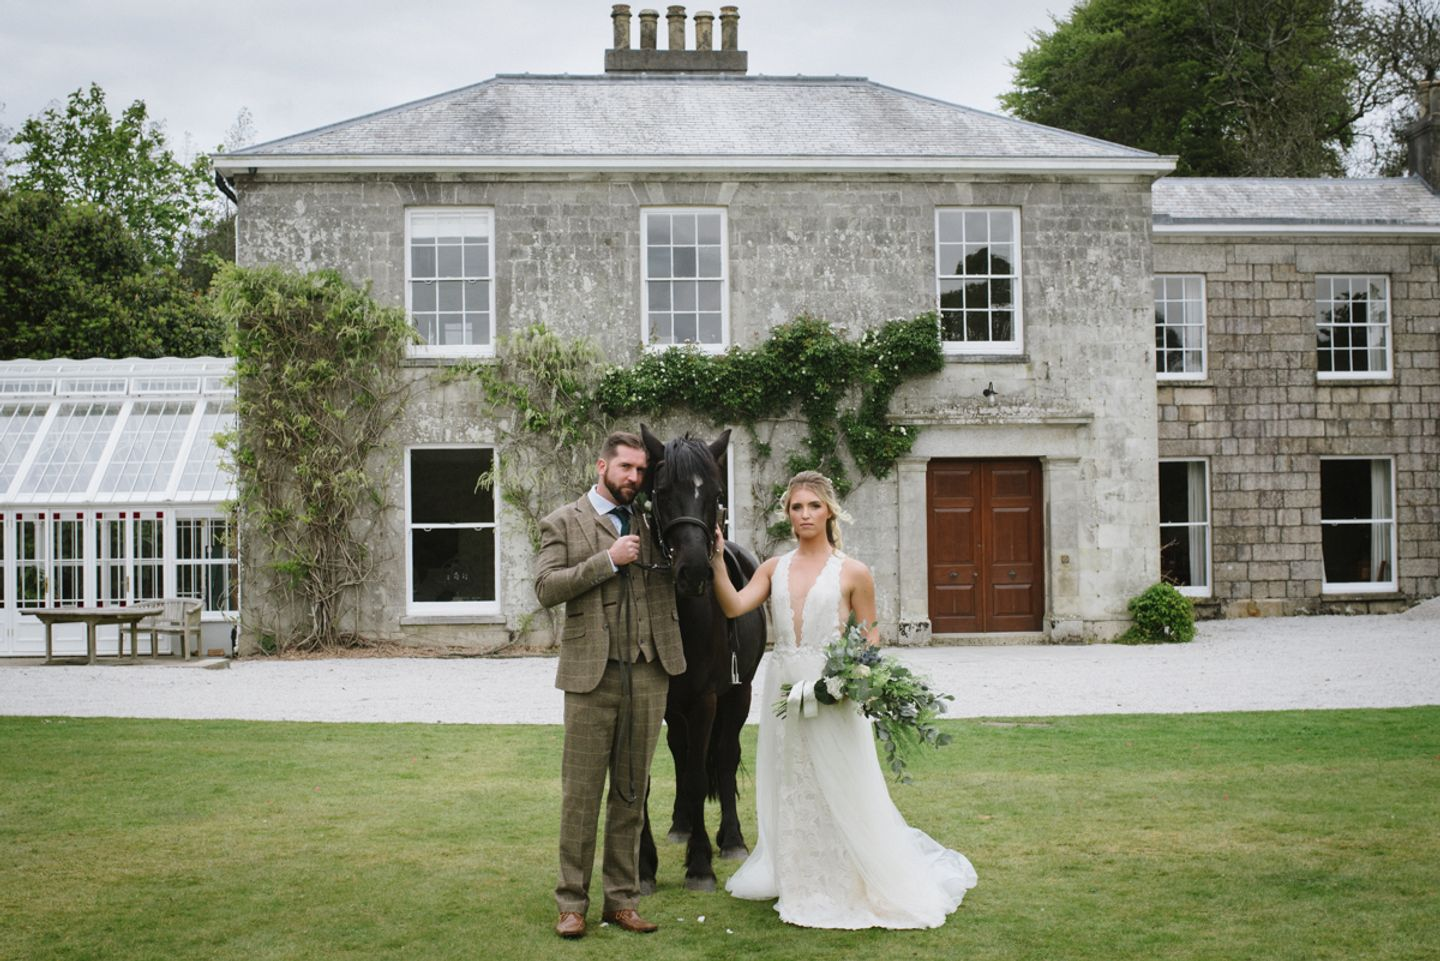 Bride and groom pose with horse in front of Cornish country house